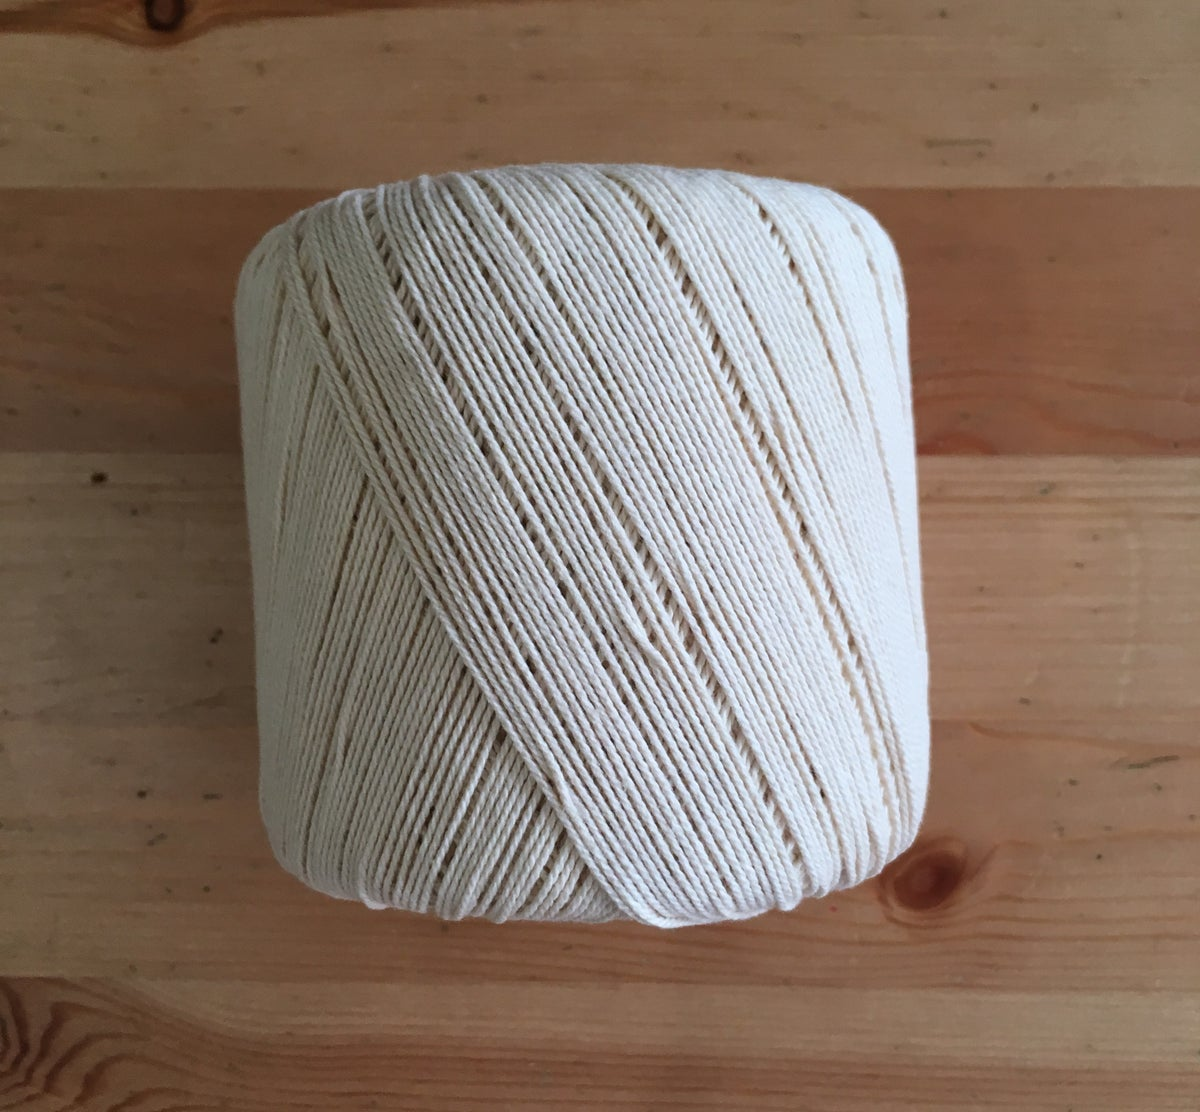 Weft Thread 50g (Crochet Cotton) For Warping Up Your Loom